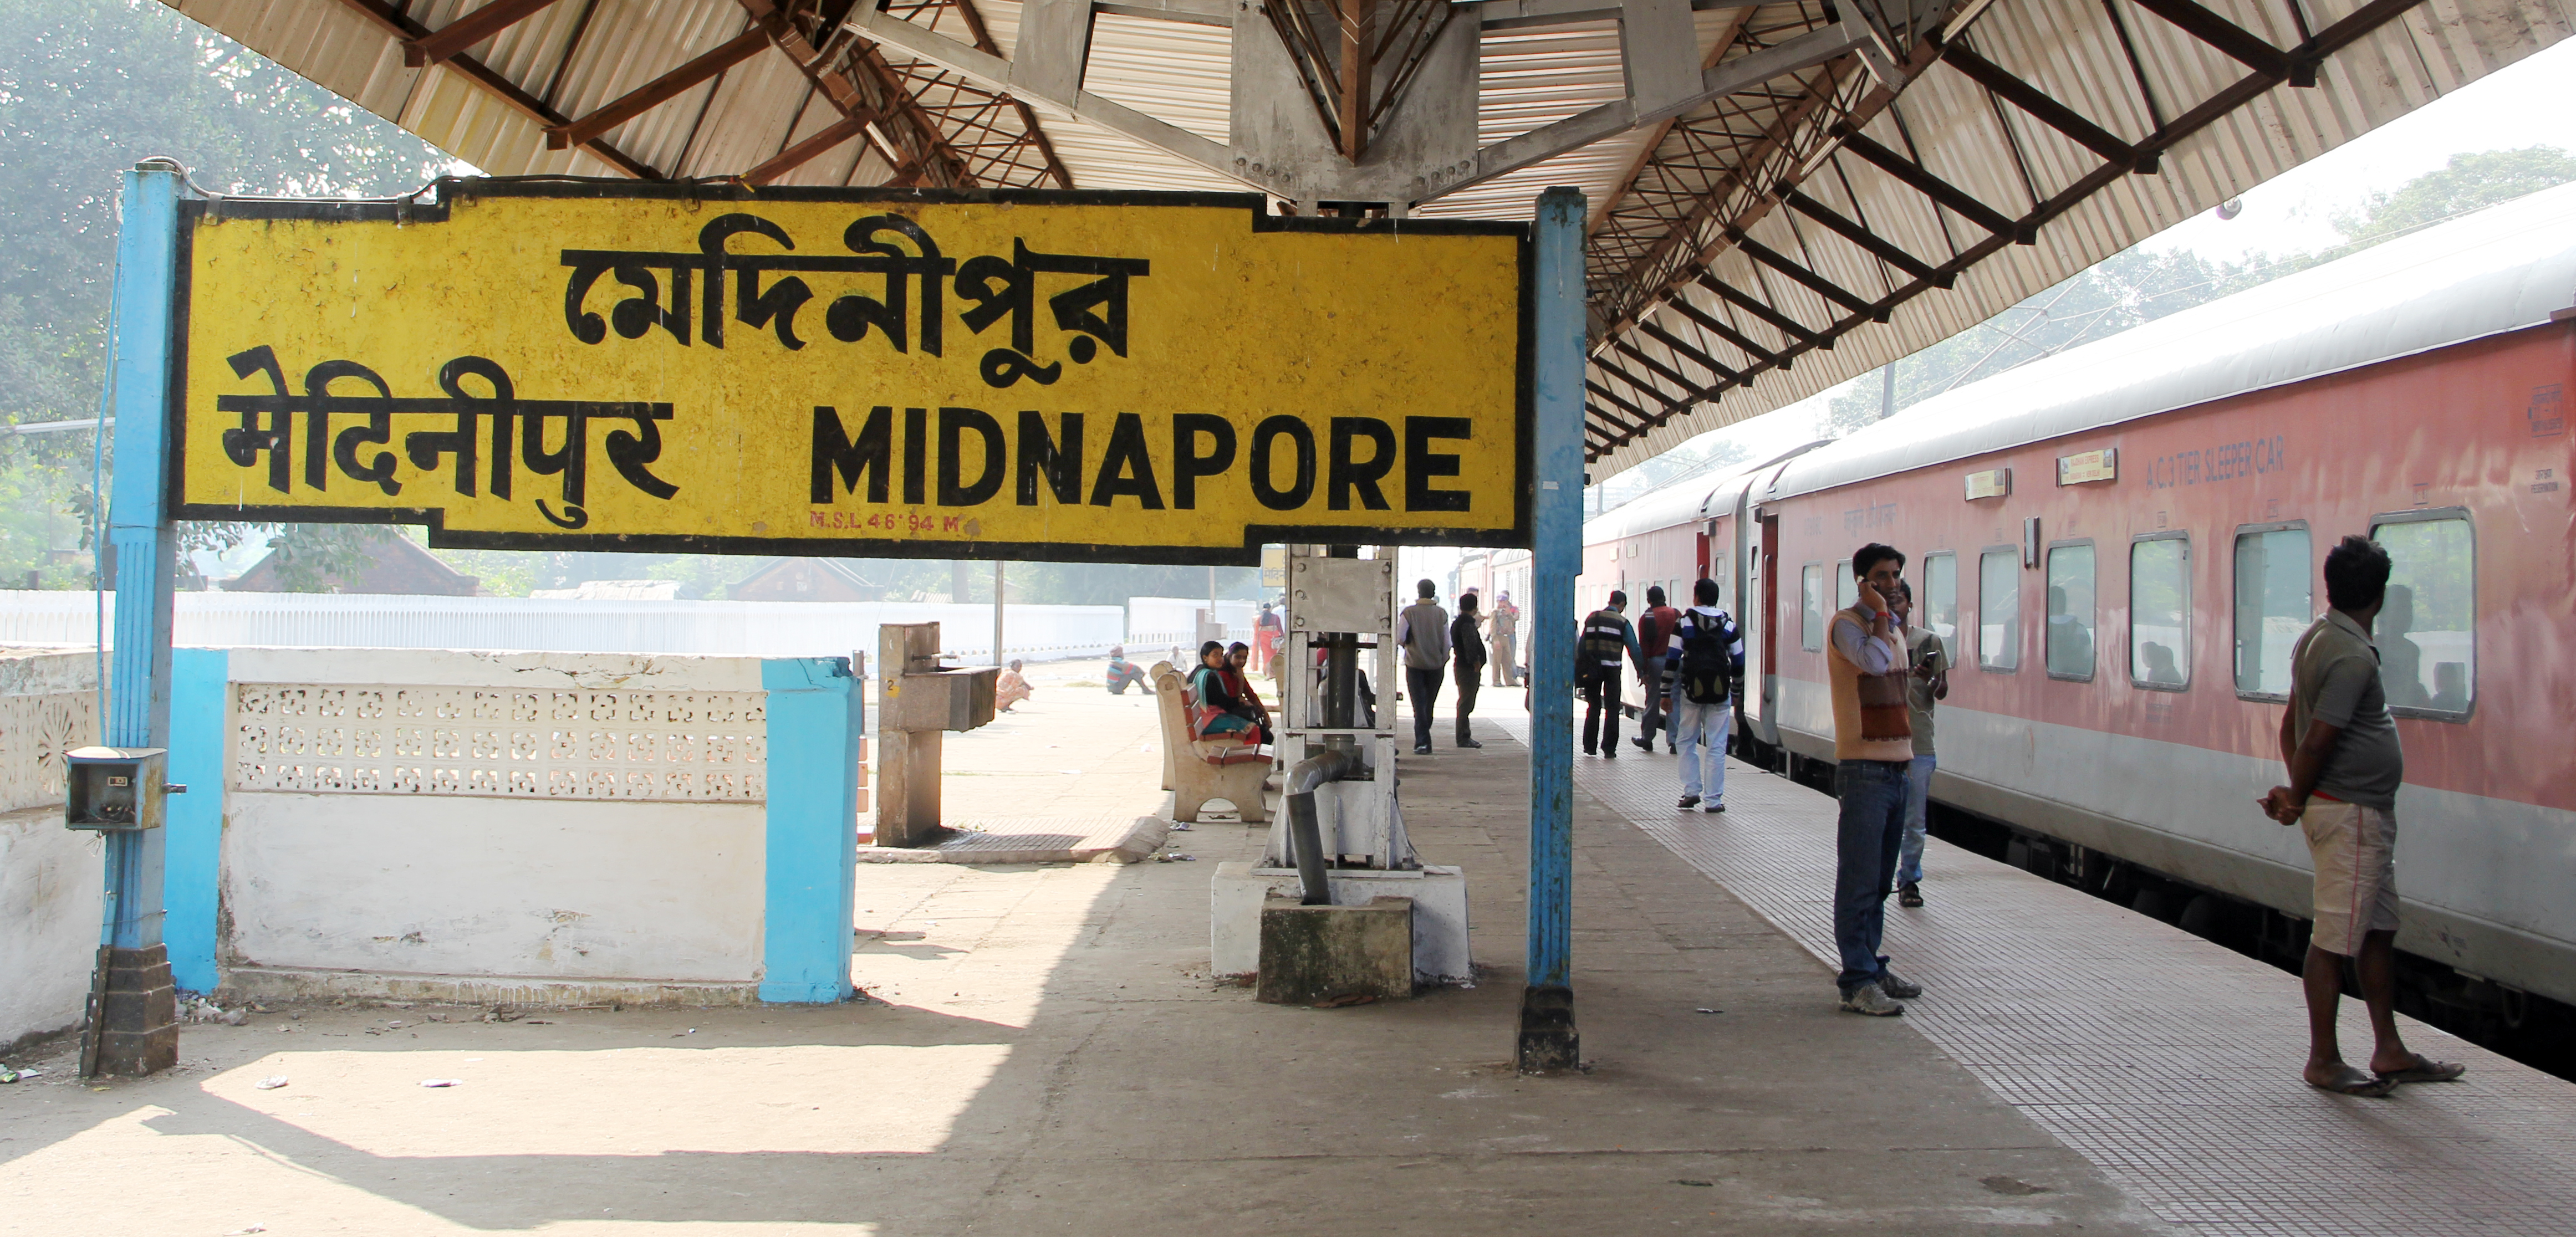 File:Midnapore (MDN), Midnapore Railway Station 04.JPG ...